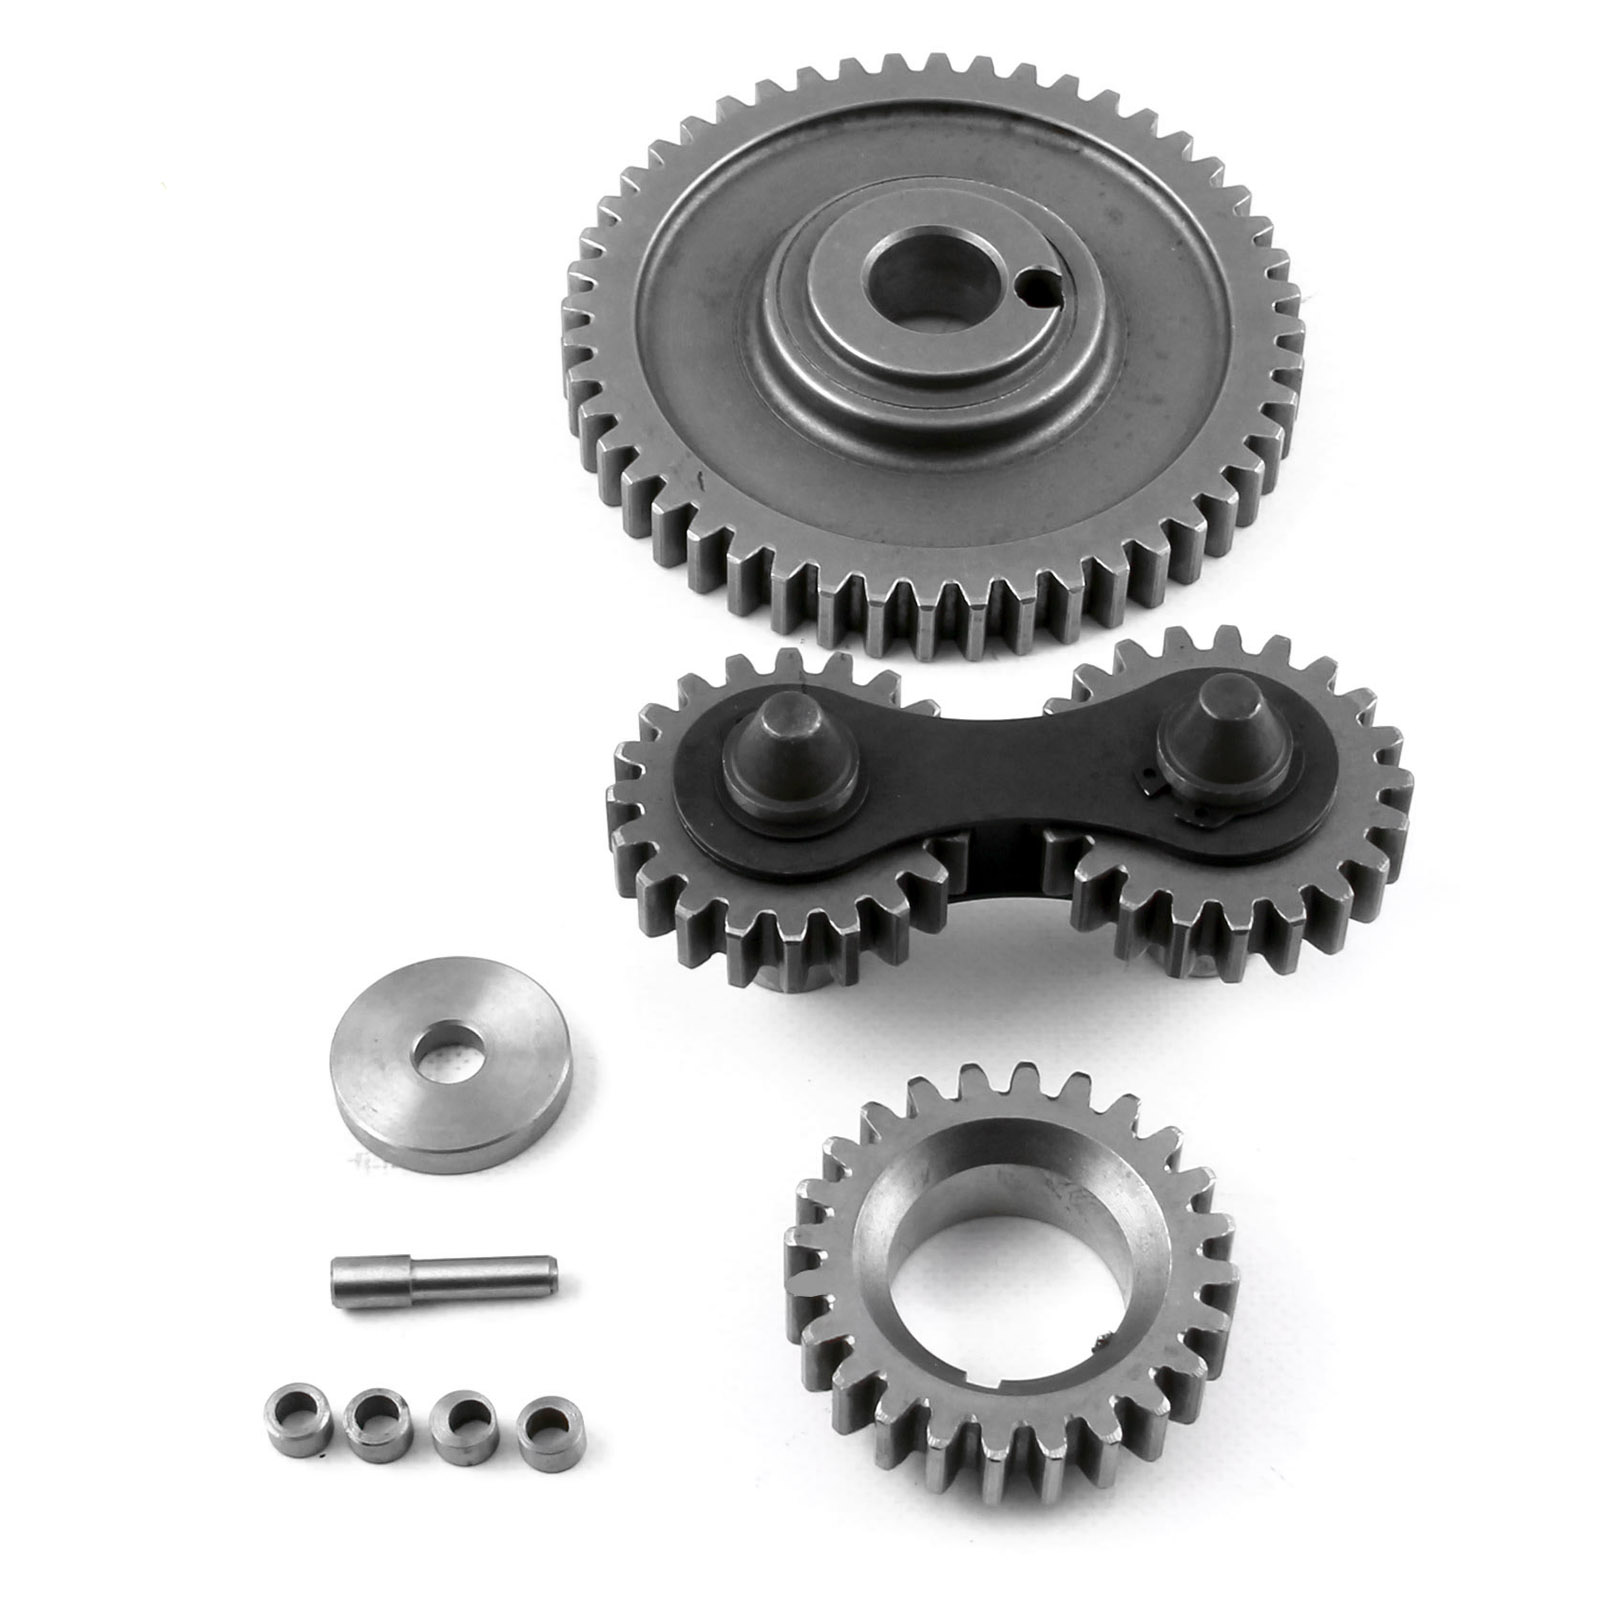 Ford 300 6 Timing Gear Pic